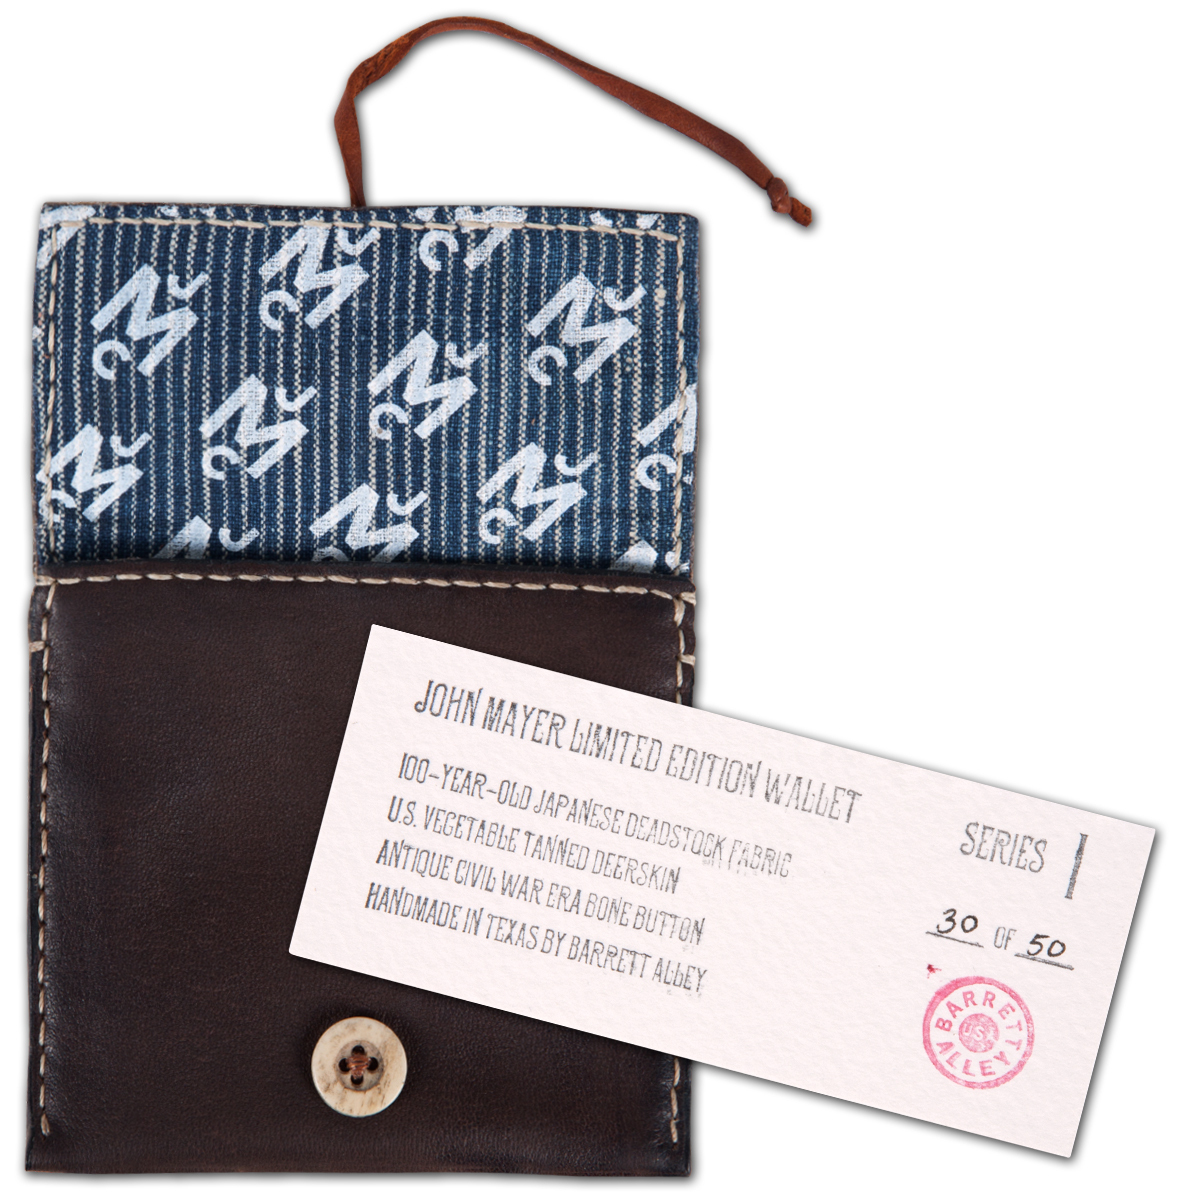 Barrett Alley X John Mayer Wallet Brown/Blue Stripe